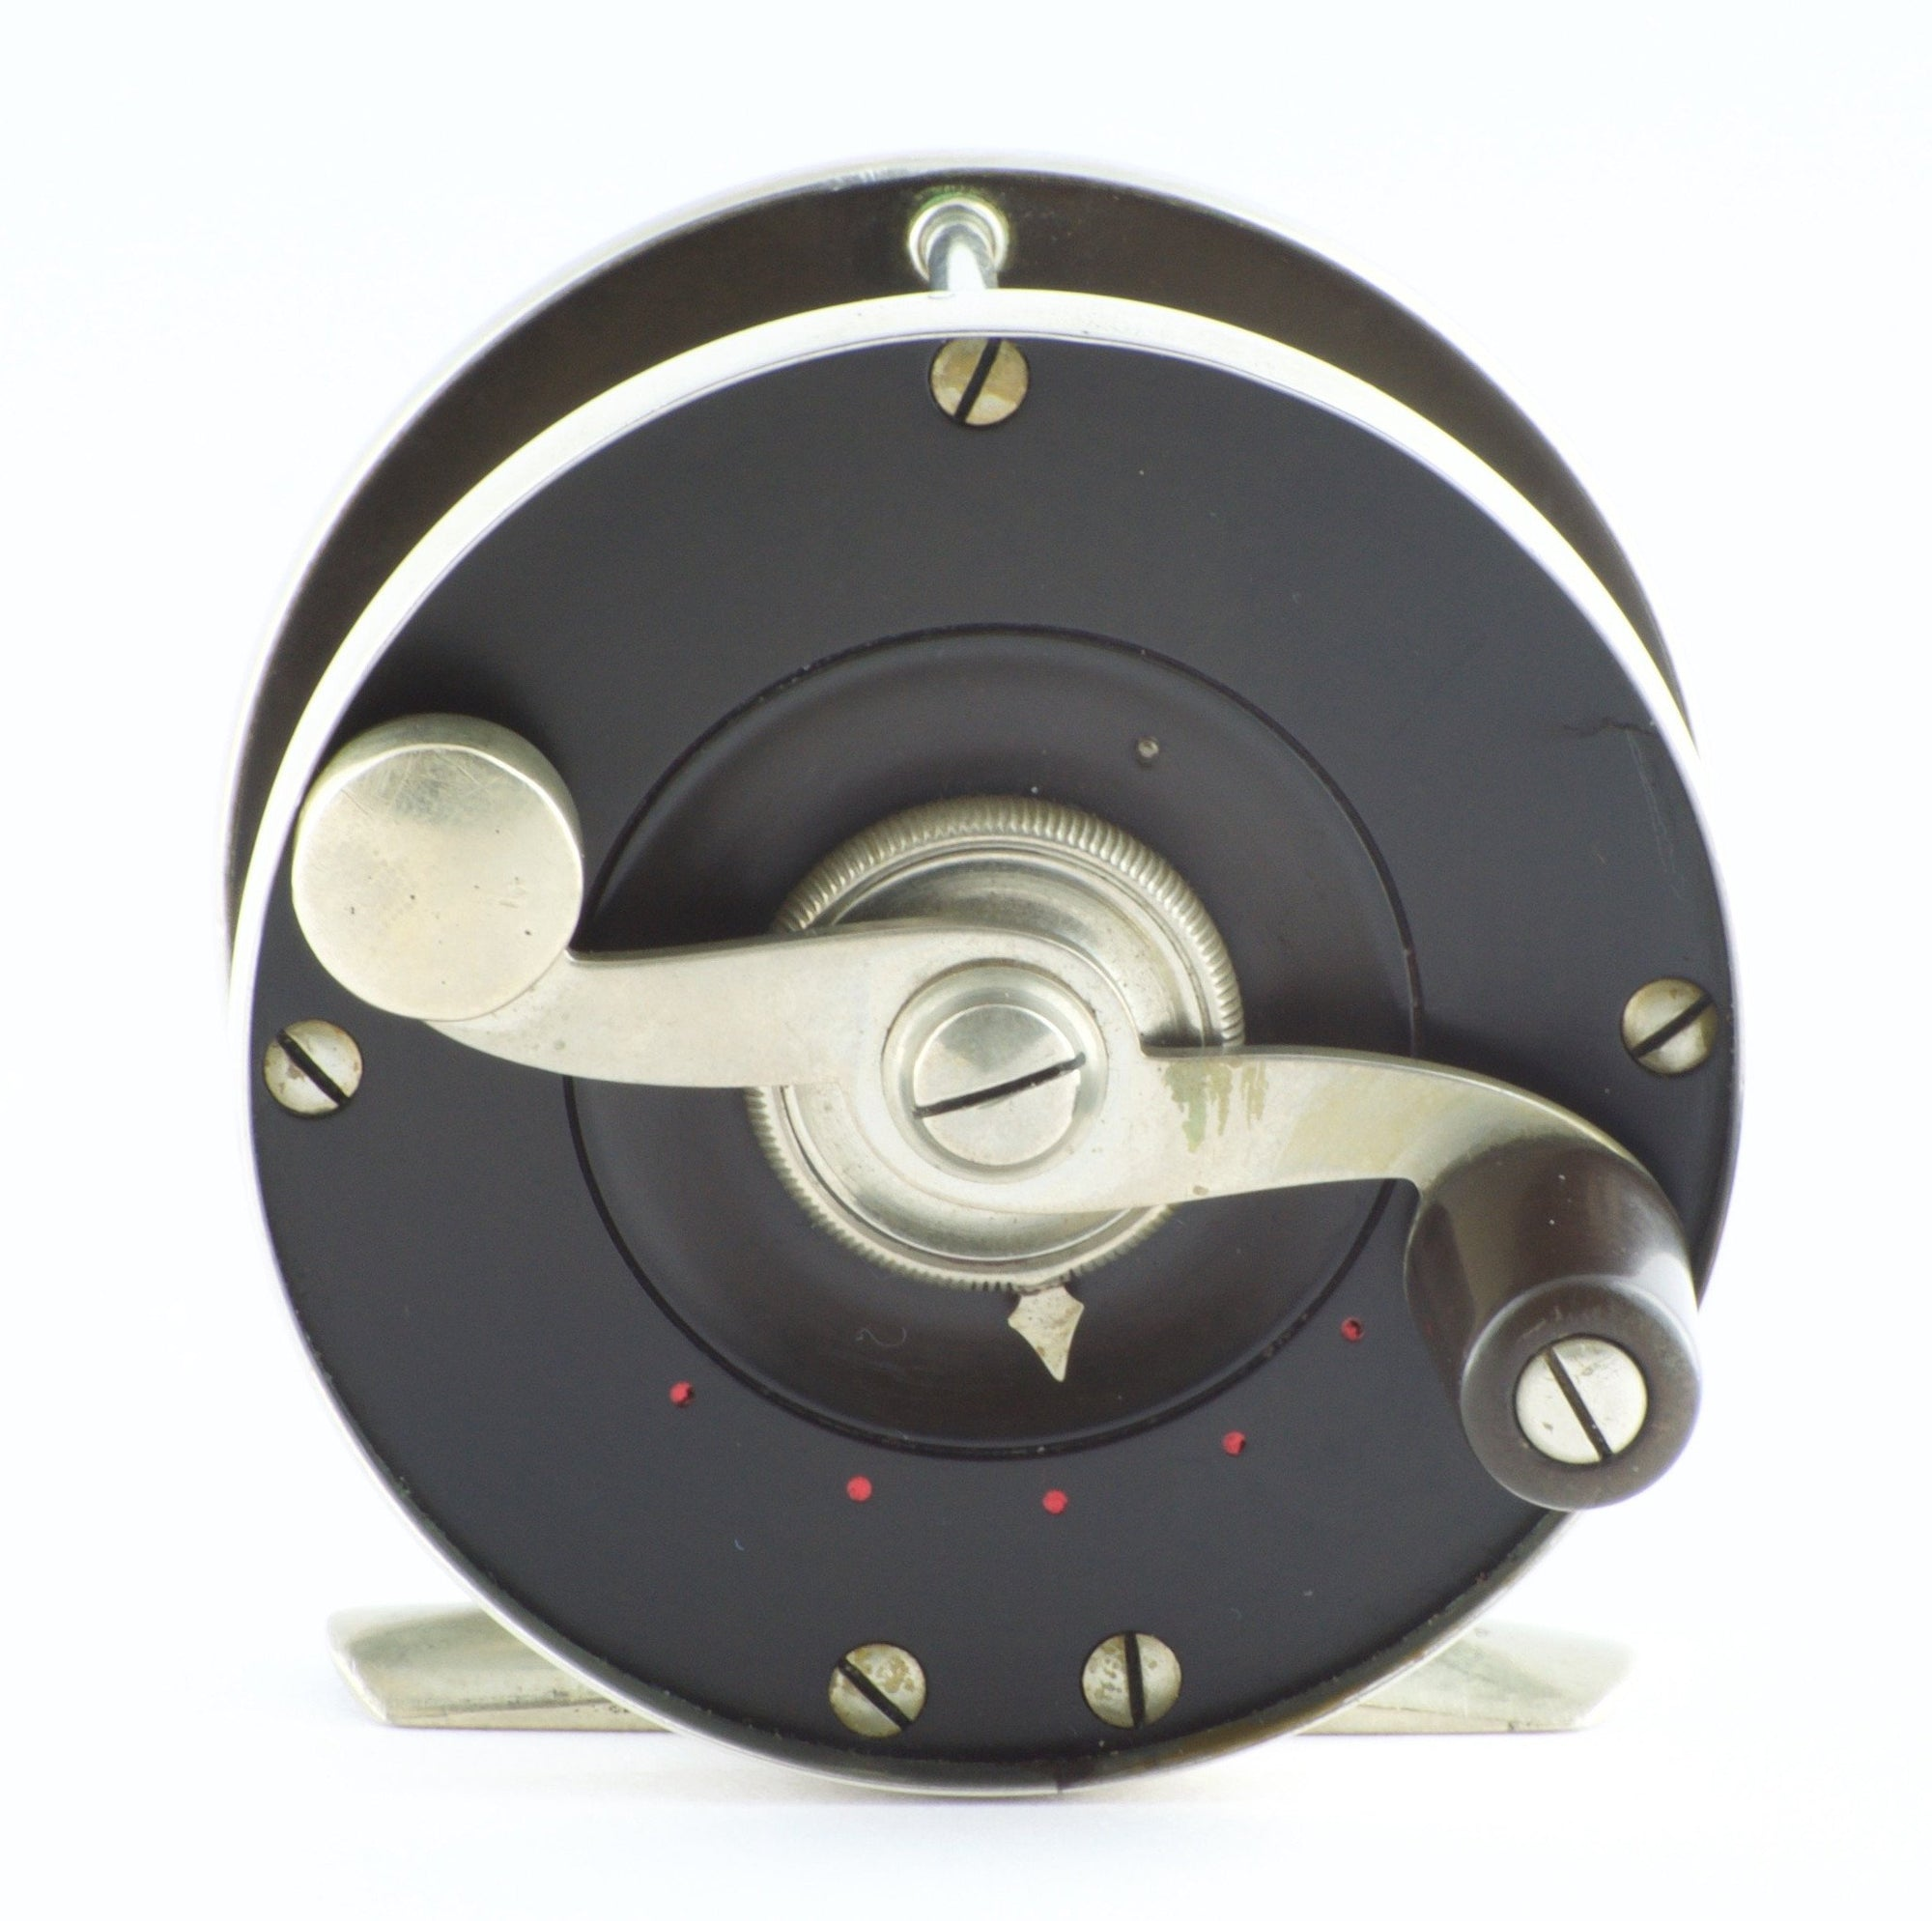 Vom Hofe, Edward - Model 360 Perfection Size 3 Fly Reel